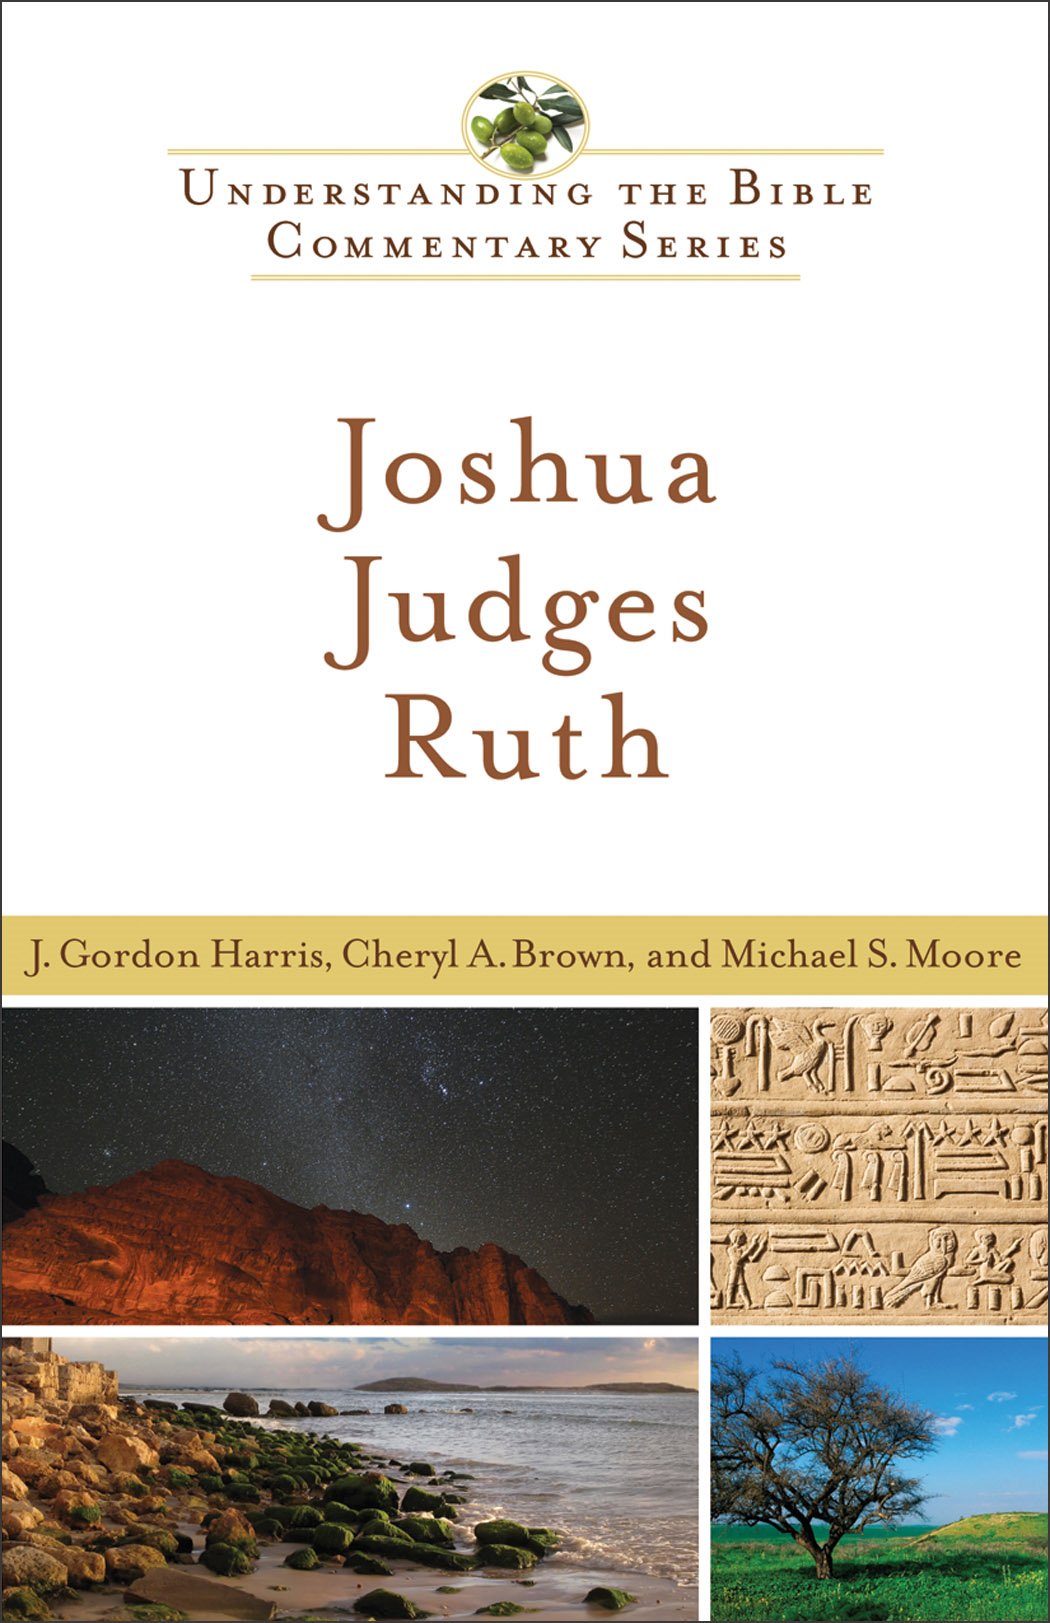 Joshua, Judges, Ruth (Understanding the Bible Commentary Series) By: Cheryl A. Brown,J. Gordon Harris,Michael S. Moore